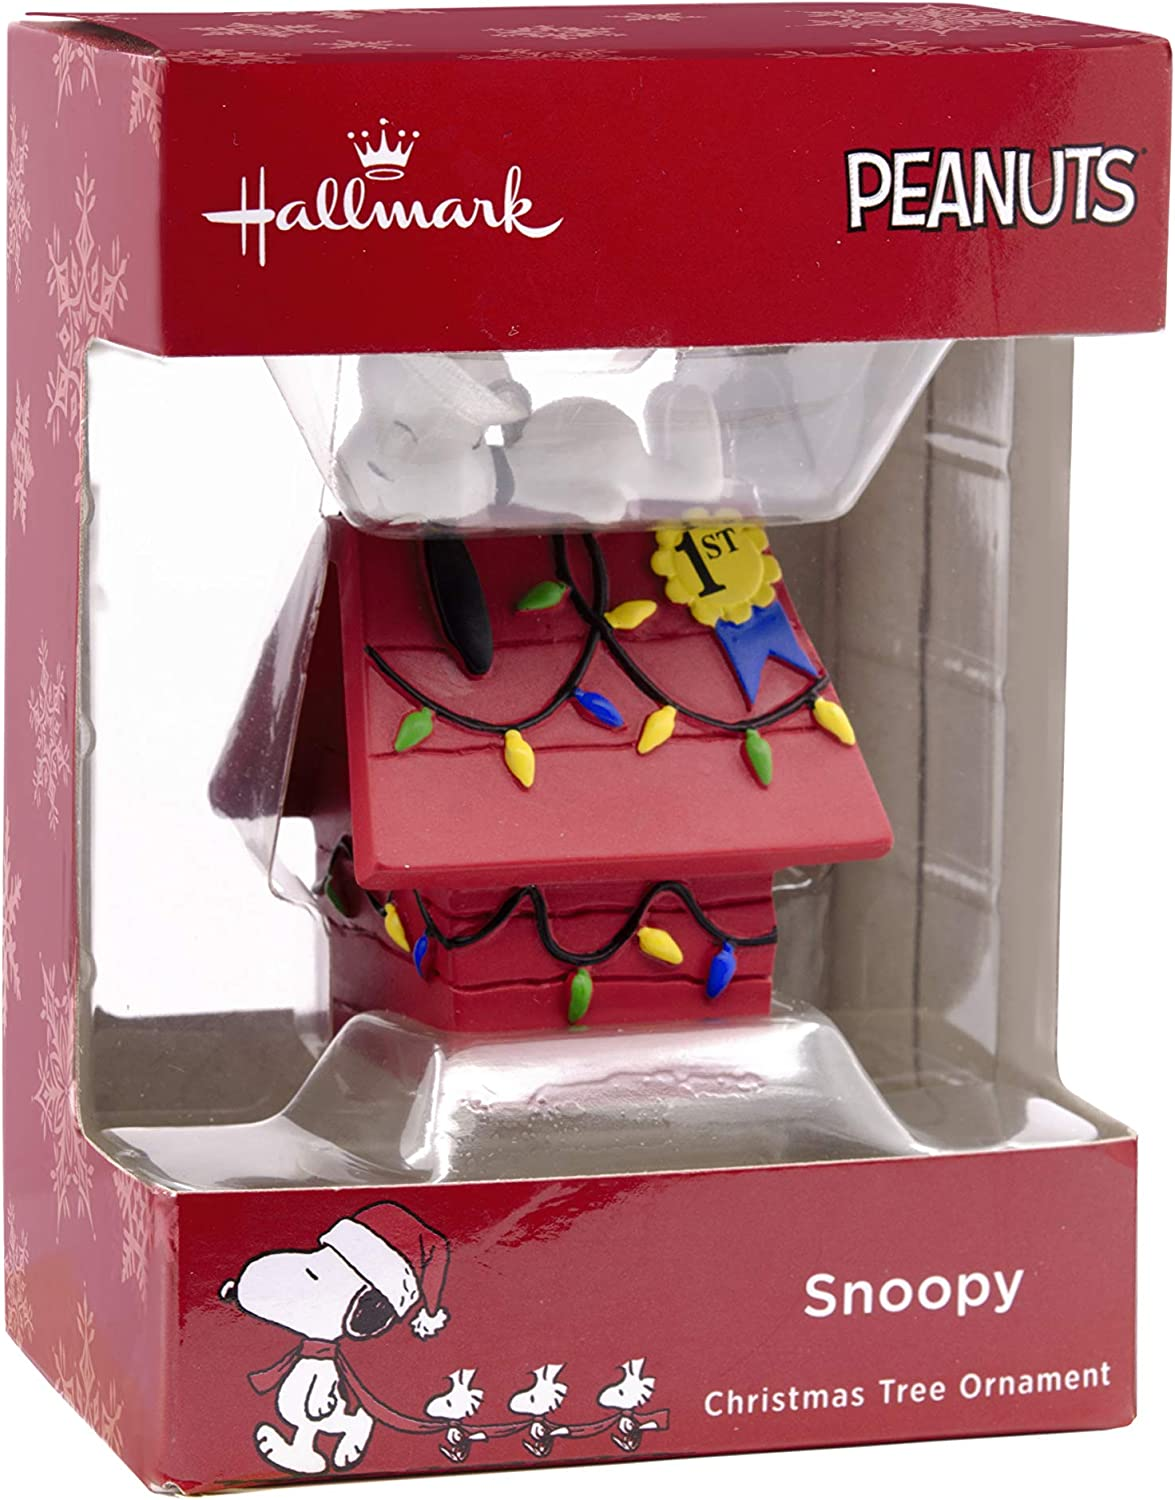 Hallmark Peanuts Snoopy /& Woodstock Doghouse Baby/'s First Christmas Ornament